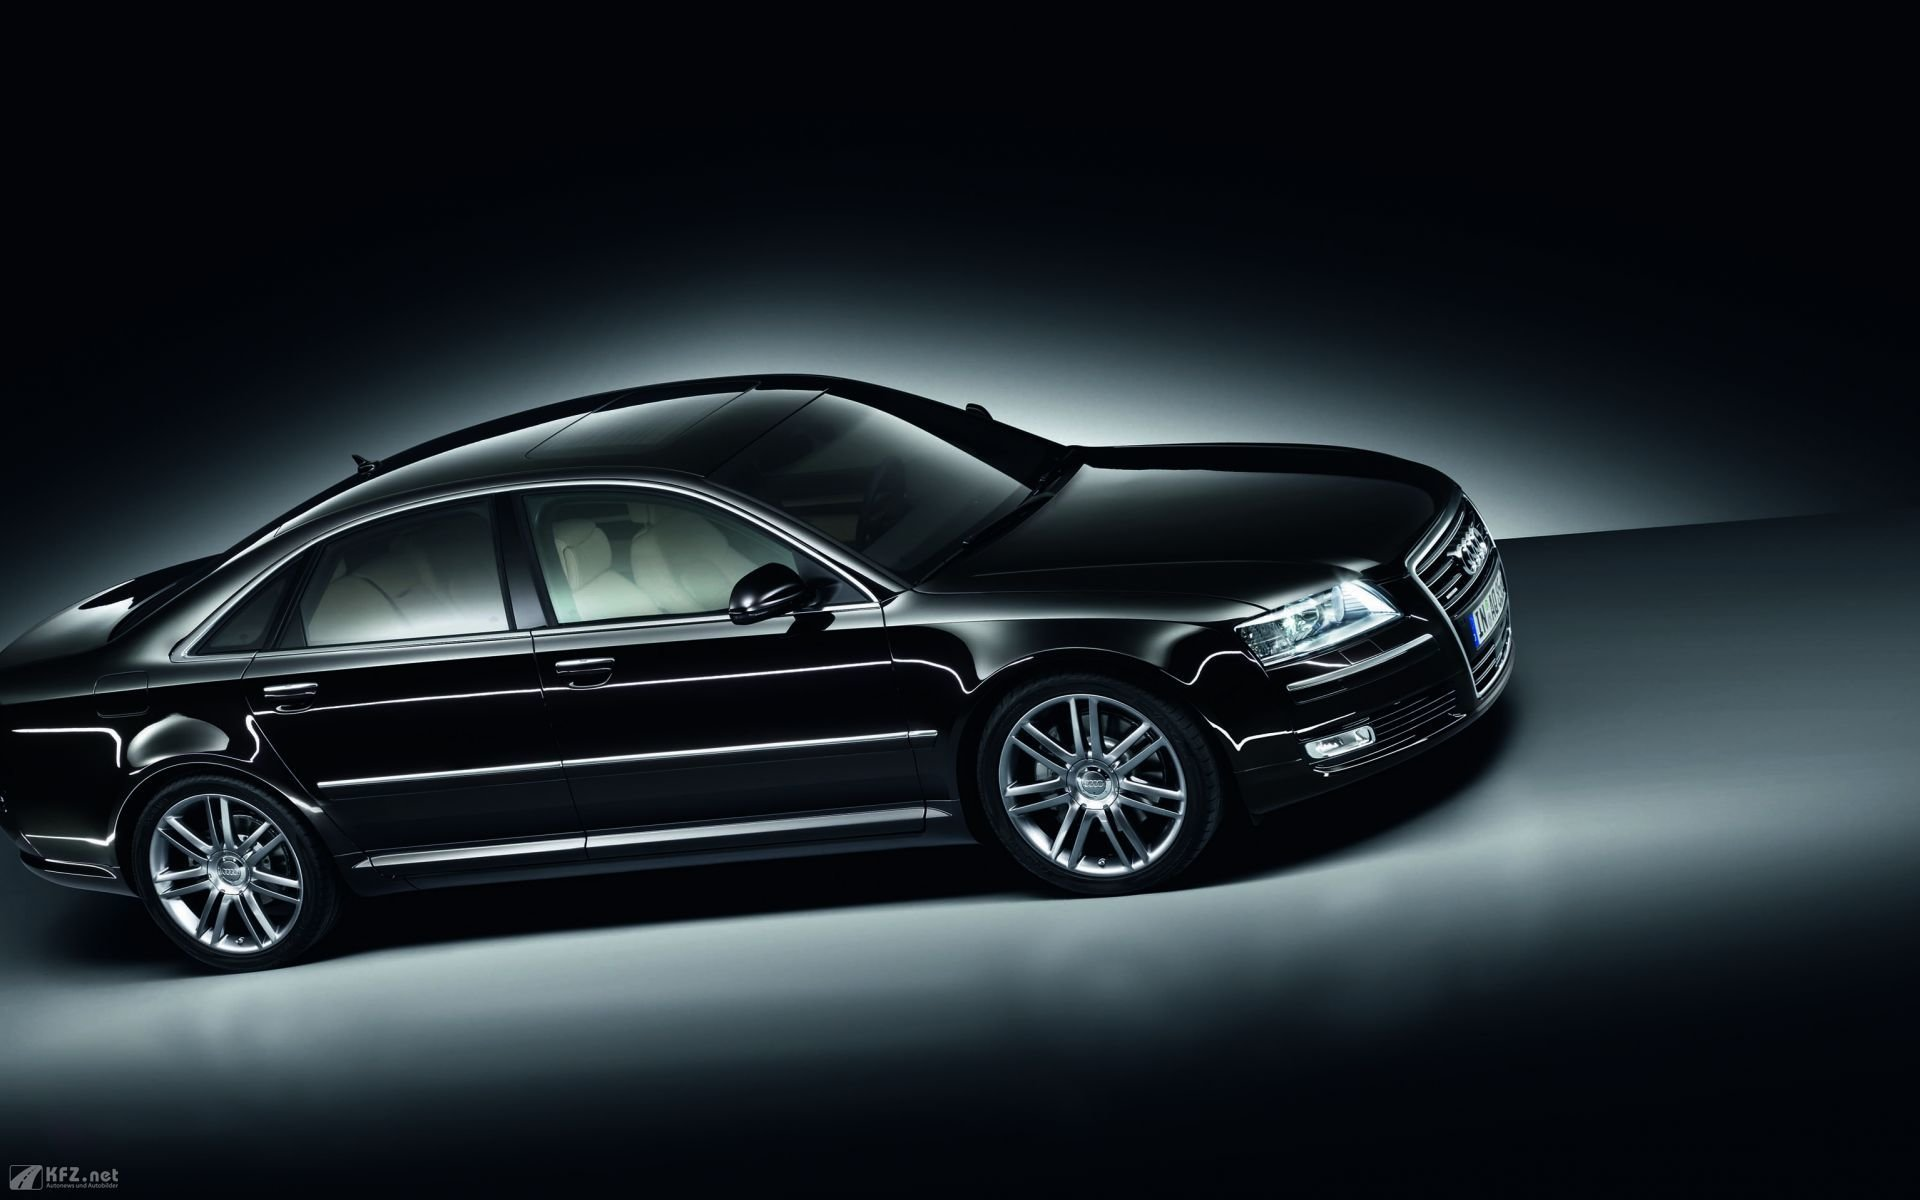 Latest Full Hd Audi A8 L Wallpapers Full Hd Pictures Free Download